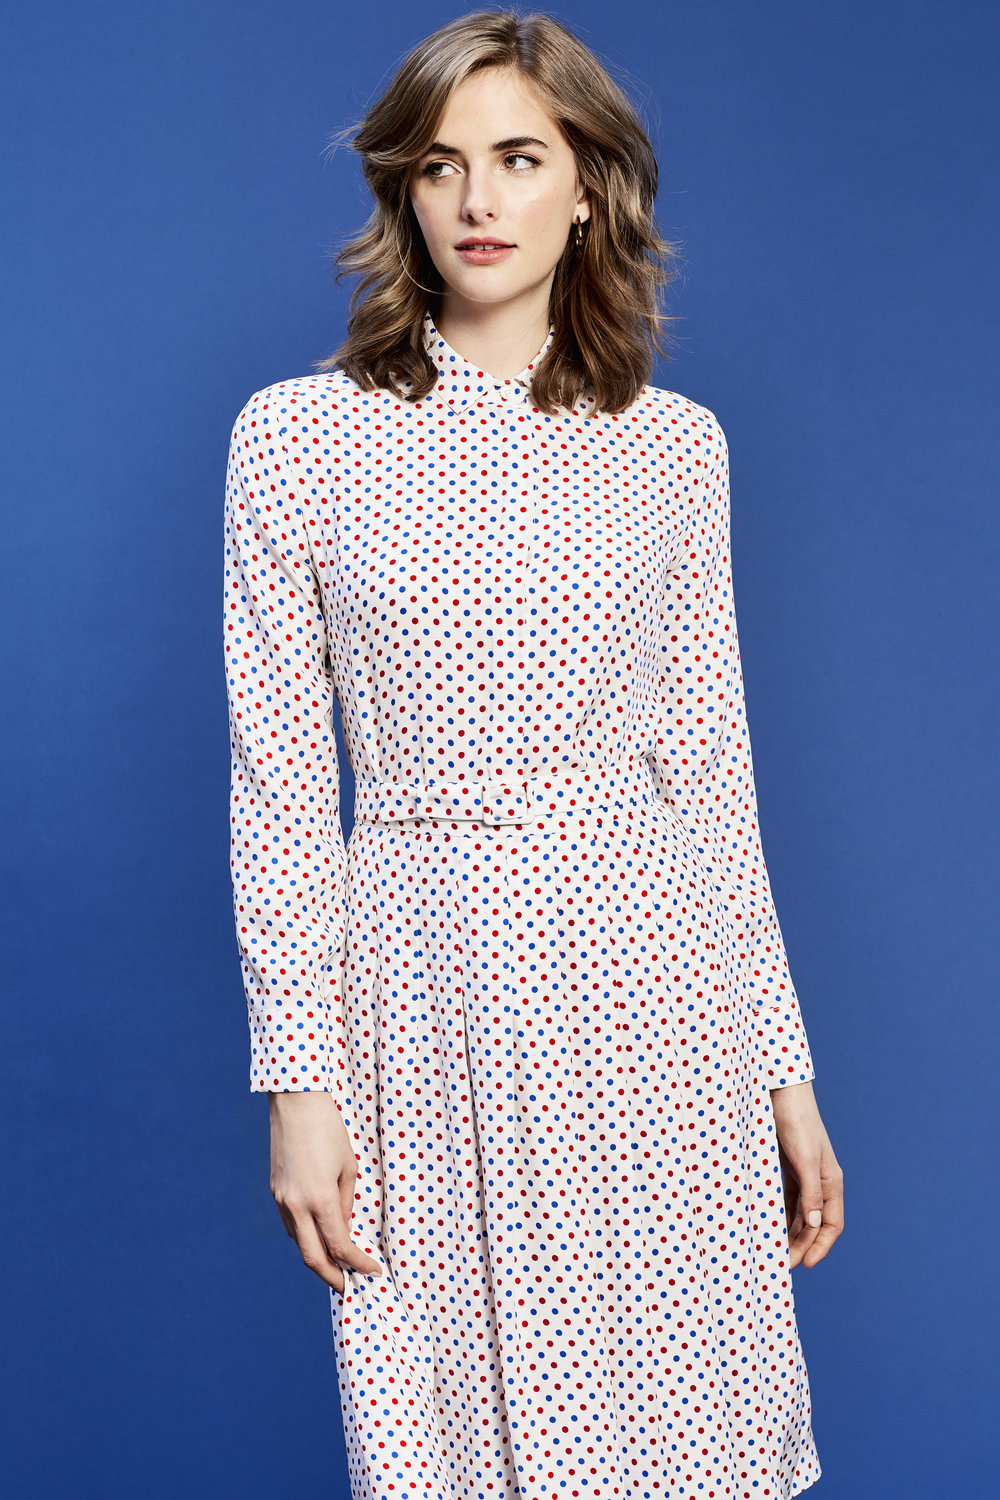 RED AND BLUE POLKADOT - SHOP NOW